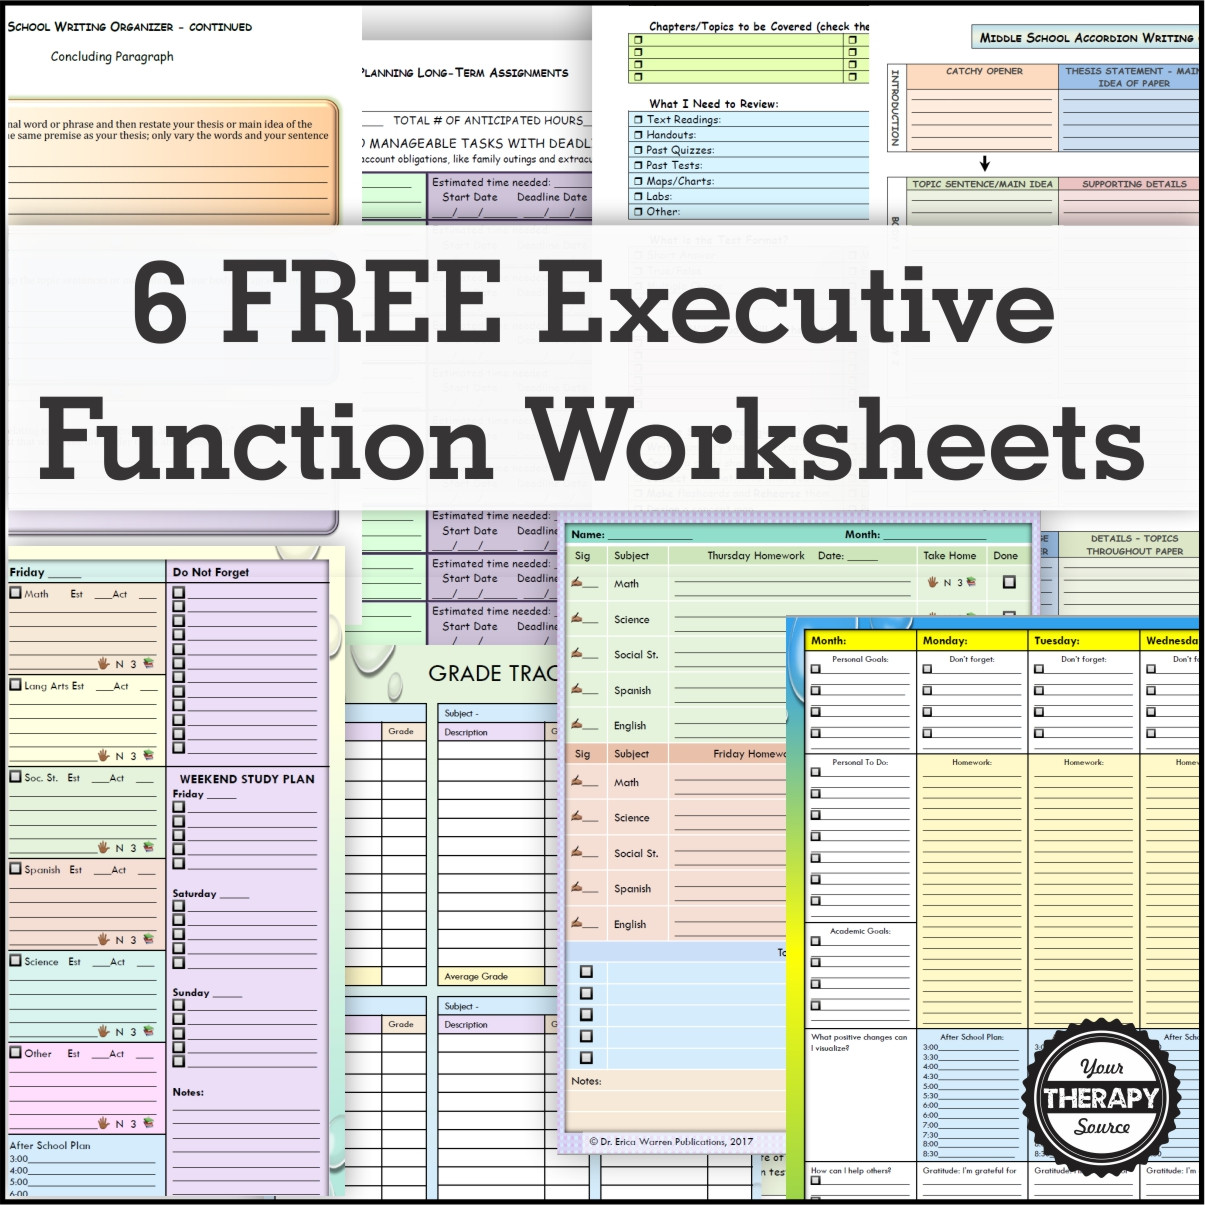 Memory Exercises for Adults Printable 6 Free Executive Functioning Activity Worksheets Your